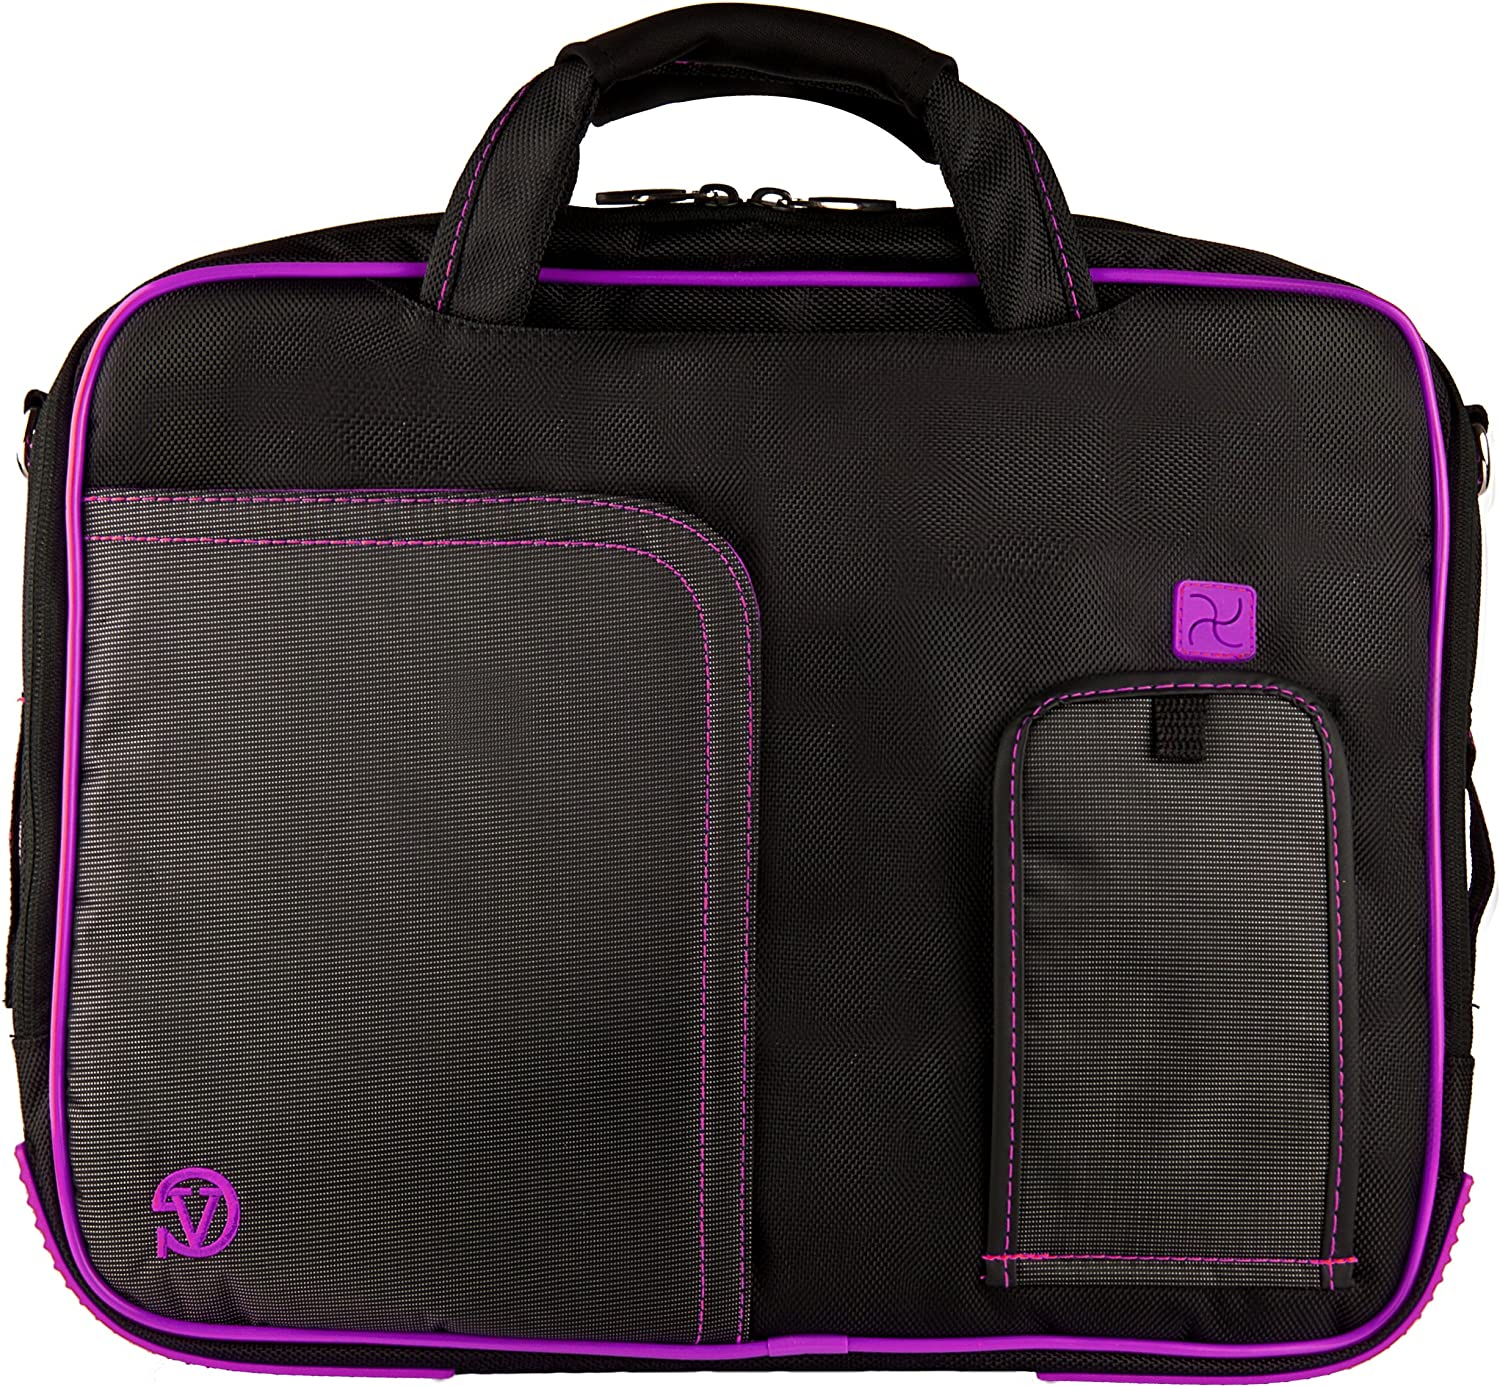 Purple VG Pindar Edition Durable Messenger Shoulder Bag Case for HP 15.6 inch Laptop Models HP 650, HP 635, HP 630, 6570b, 4545s, 4540s, 6565b, 6560b, 4530s, 4535s, 8570p, 8560p, 8560w and Wristband